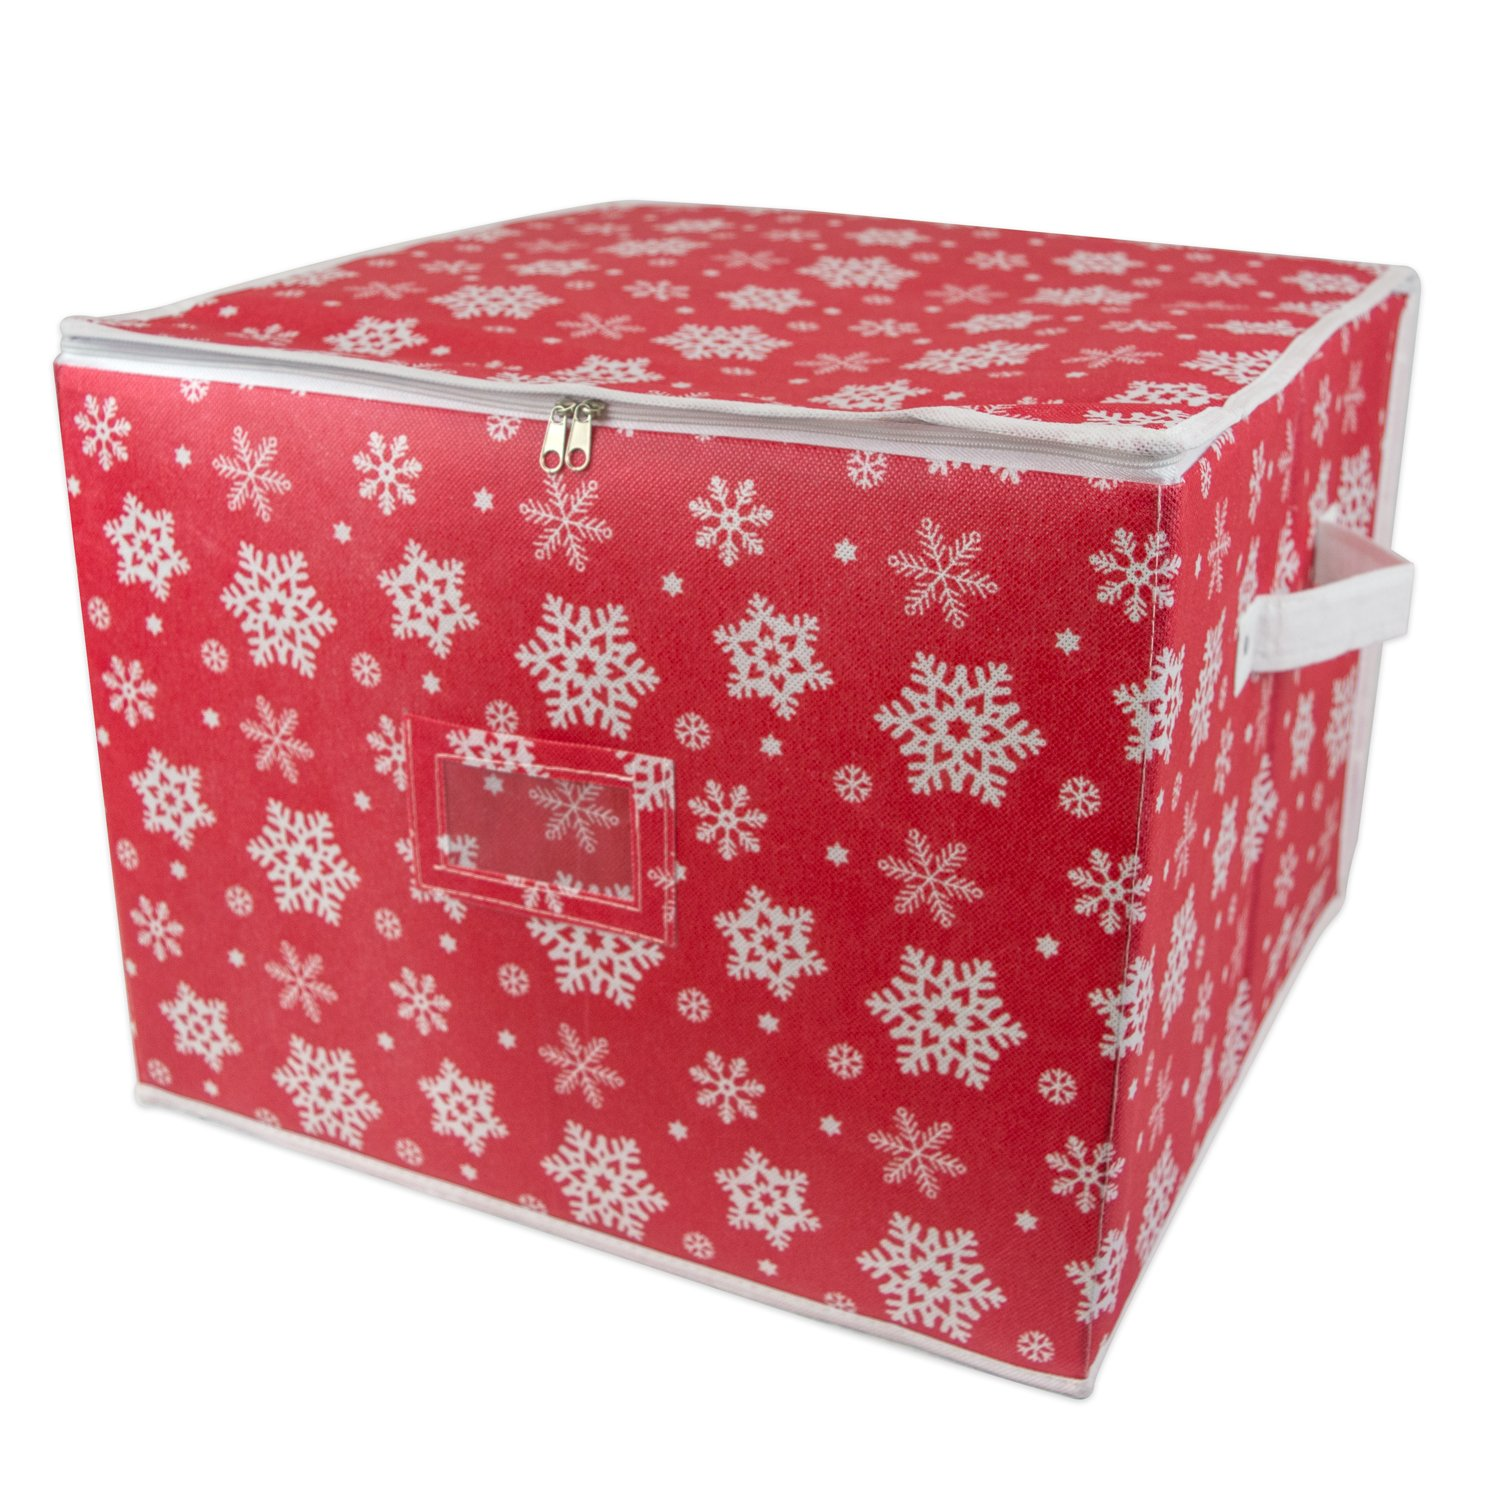 Amazoncom Dii Holiday Ornament Storage Bin With Dividers & Separators